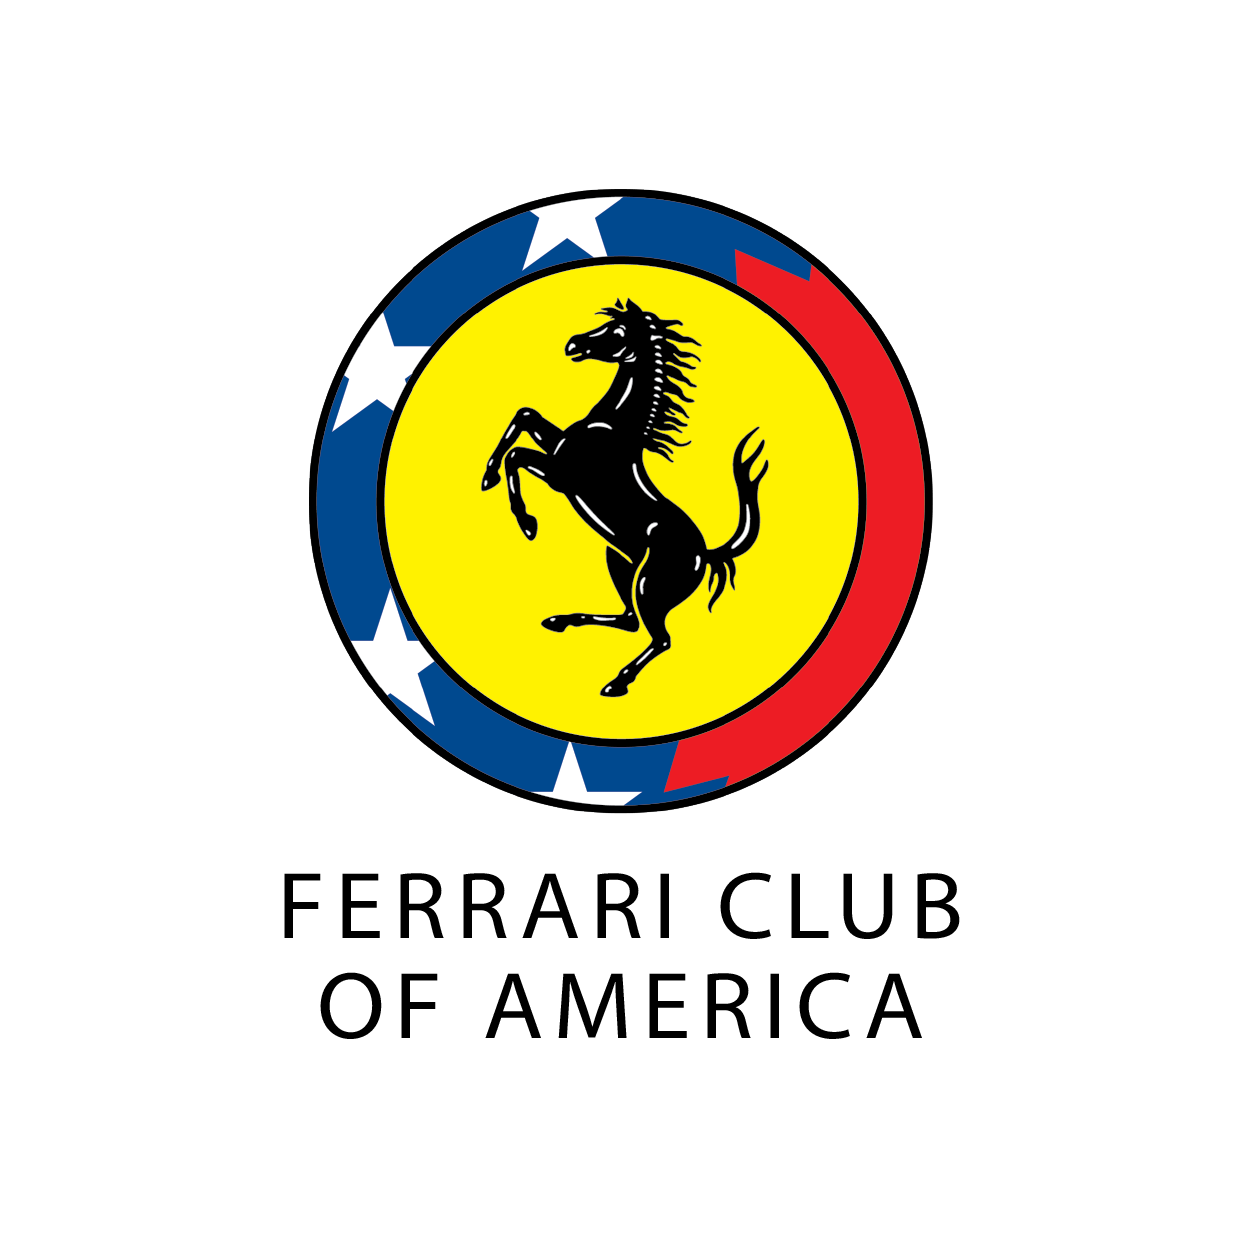 Ferrari Club of America